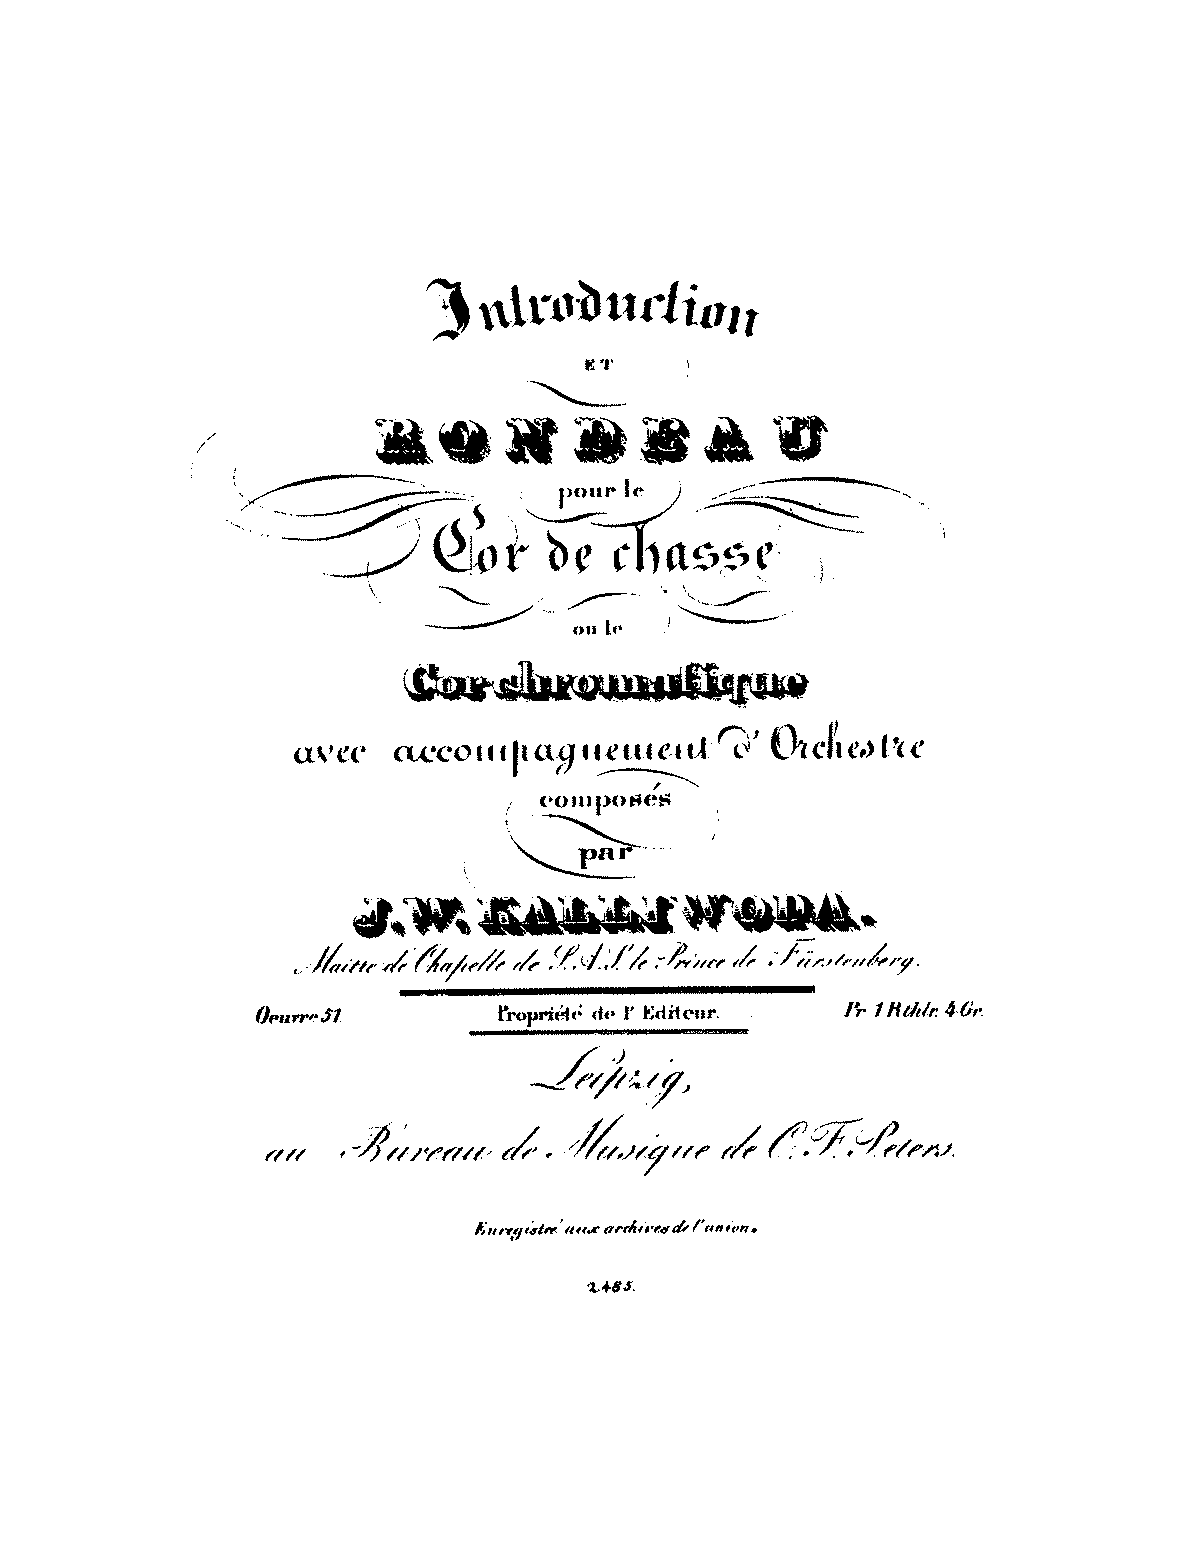 PMLP648936-JWKalliwoda Introduction et Rondeau, Op.51 hornsolo.pdf